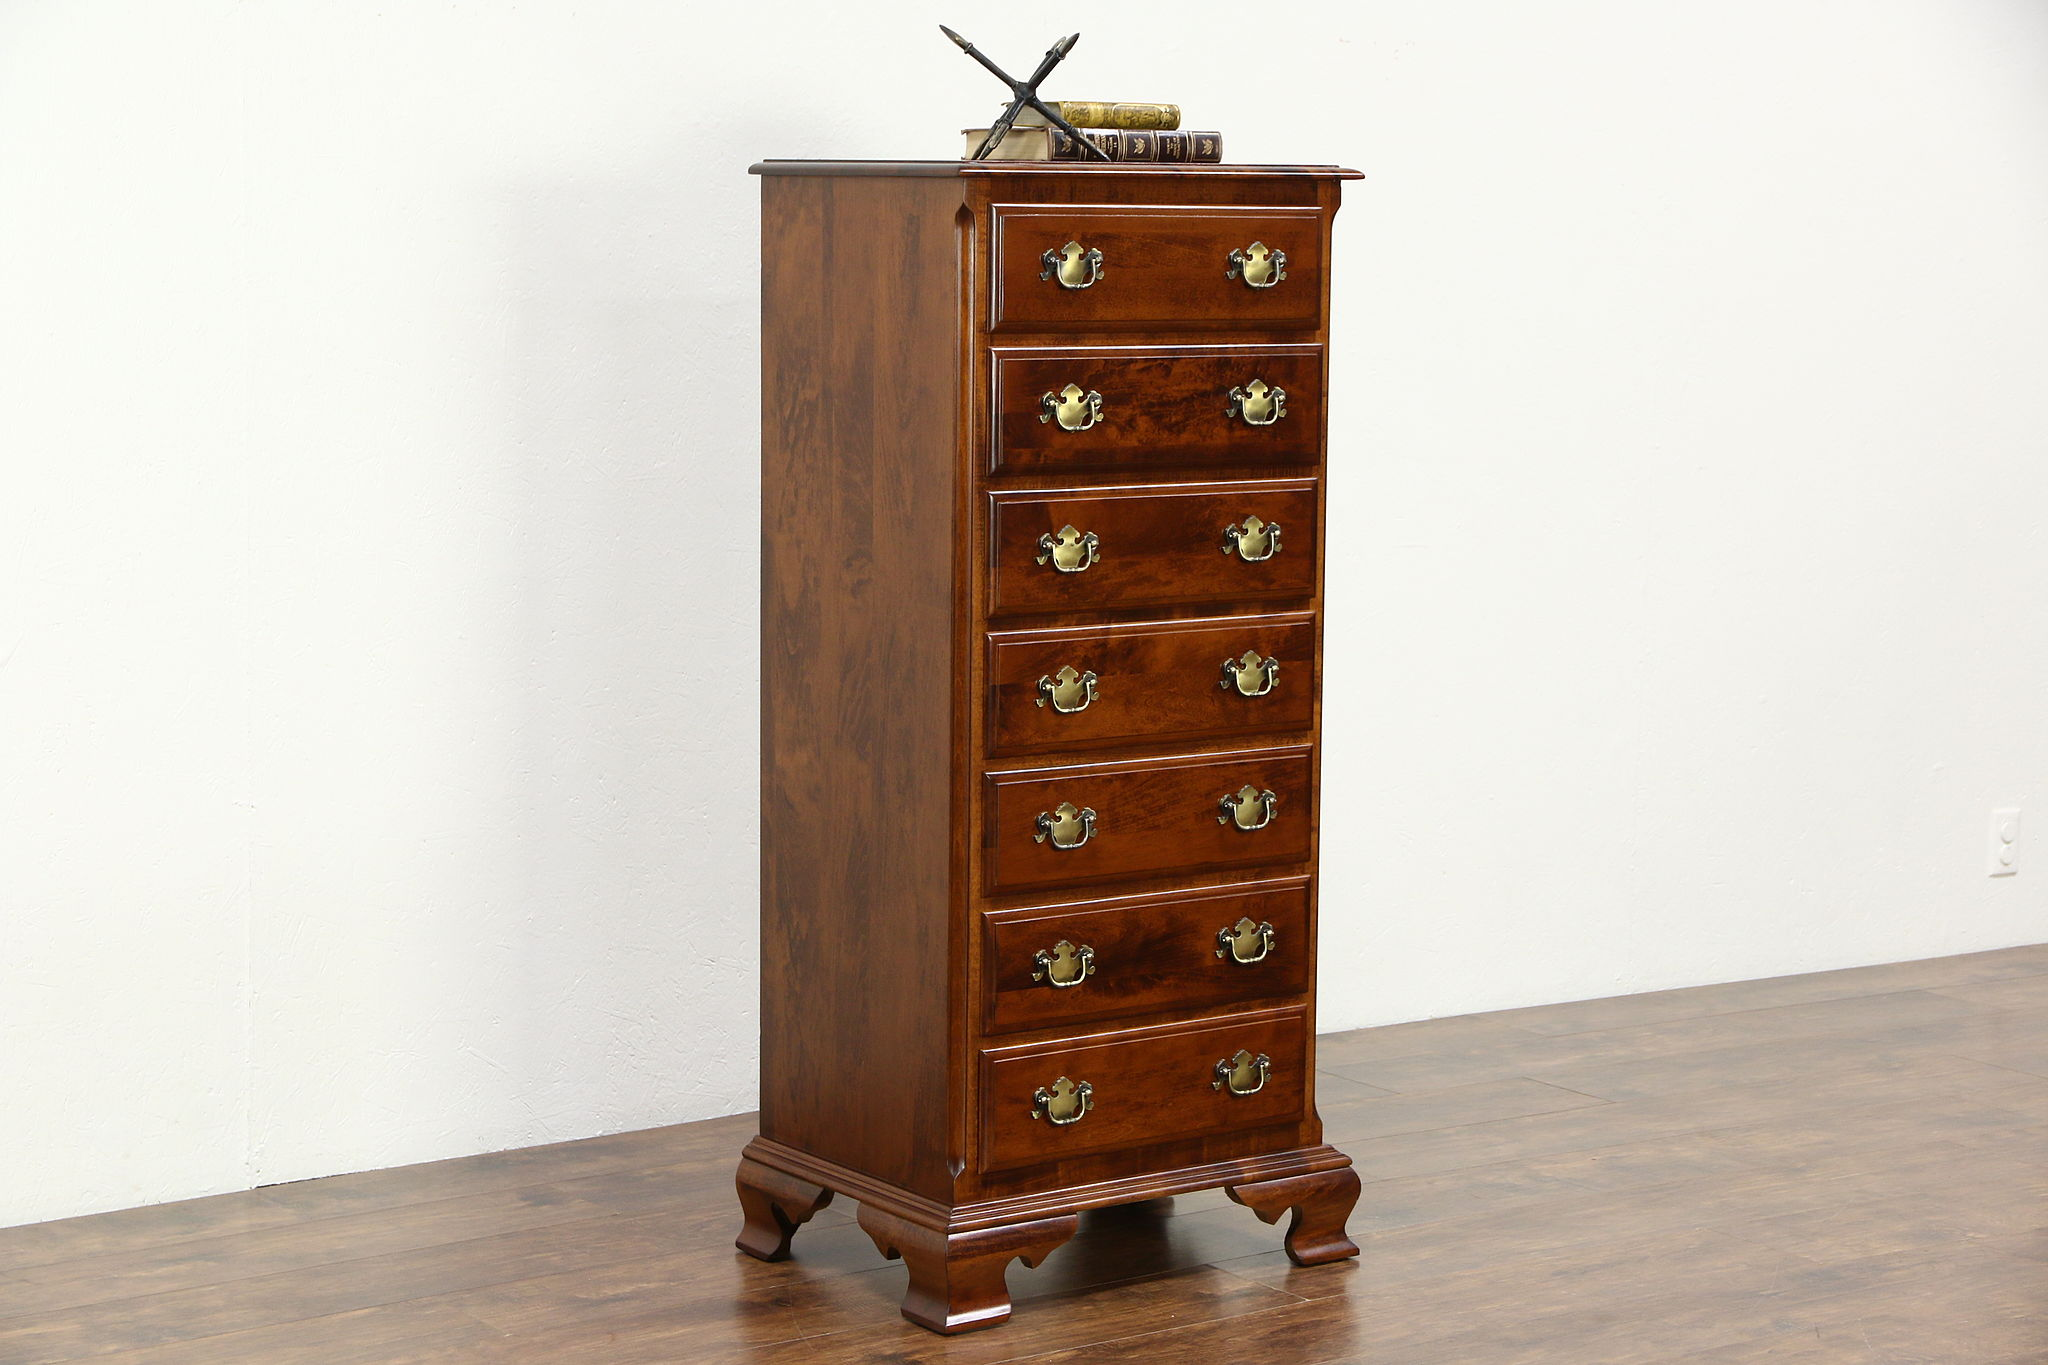 dressing cabinets buffets drawer by my taylor dresser on dressers tables credenzas pin pinterest underwear lingerie